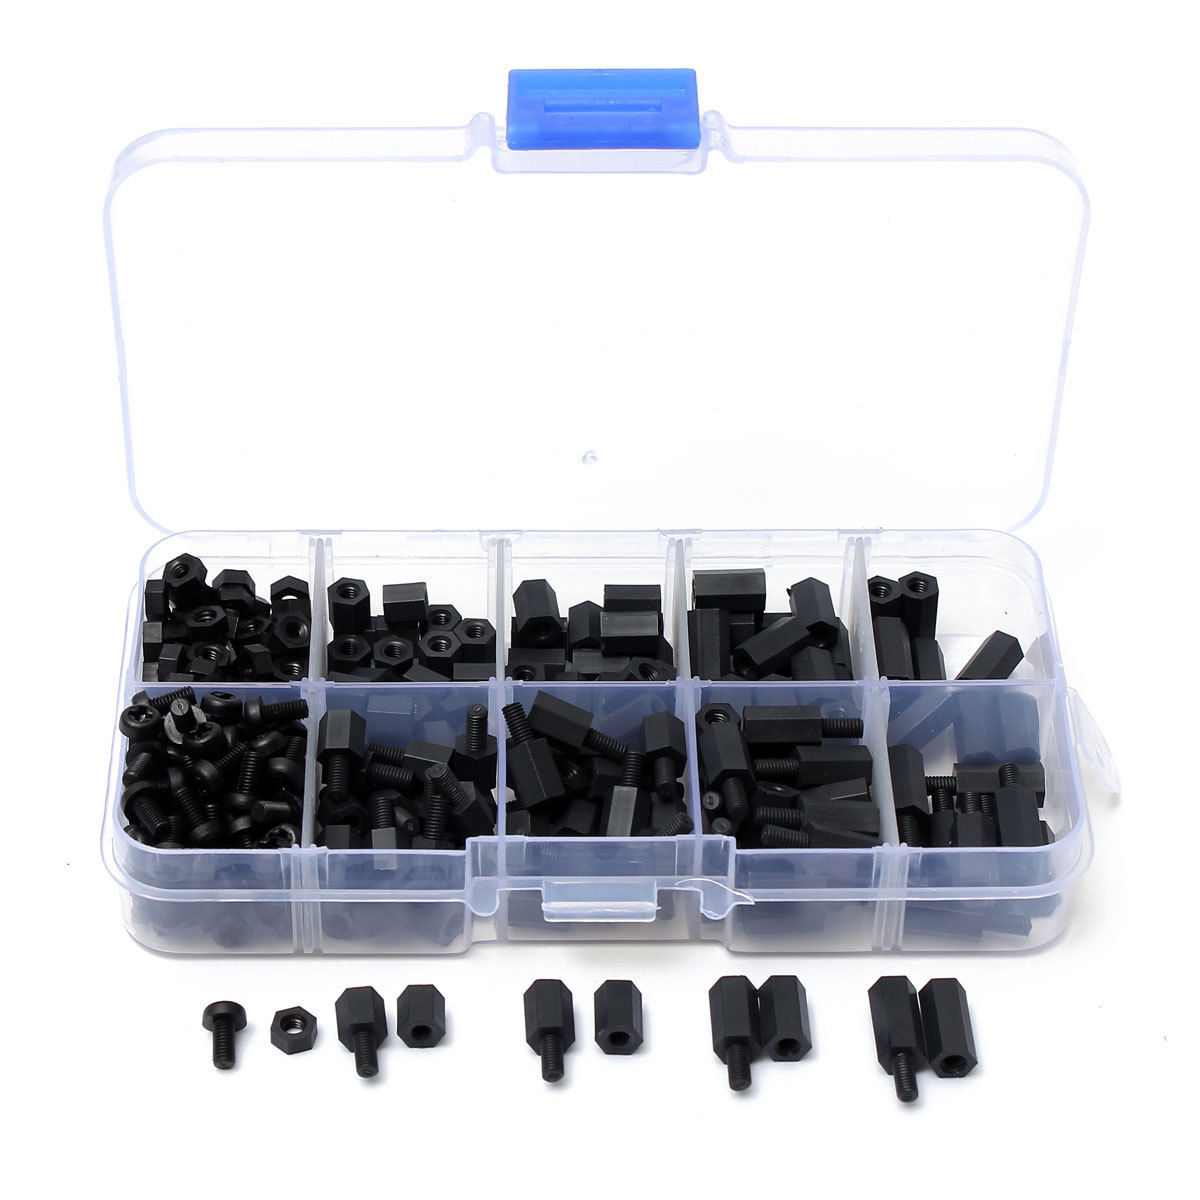 Promotion! 300pcs M3 Nylon Black M-F Hex Spacers Screw Nut Assortment Kit Stand-off Set